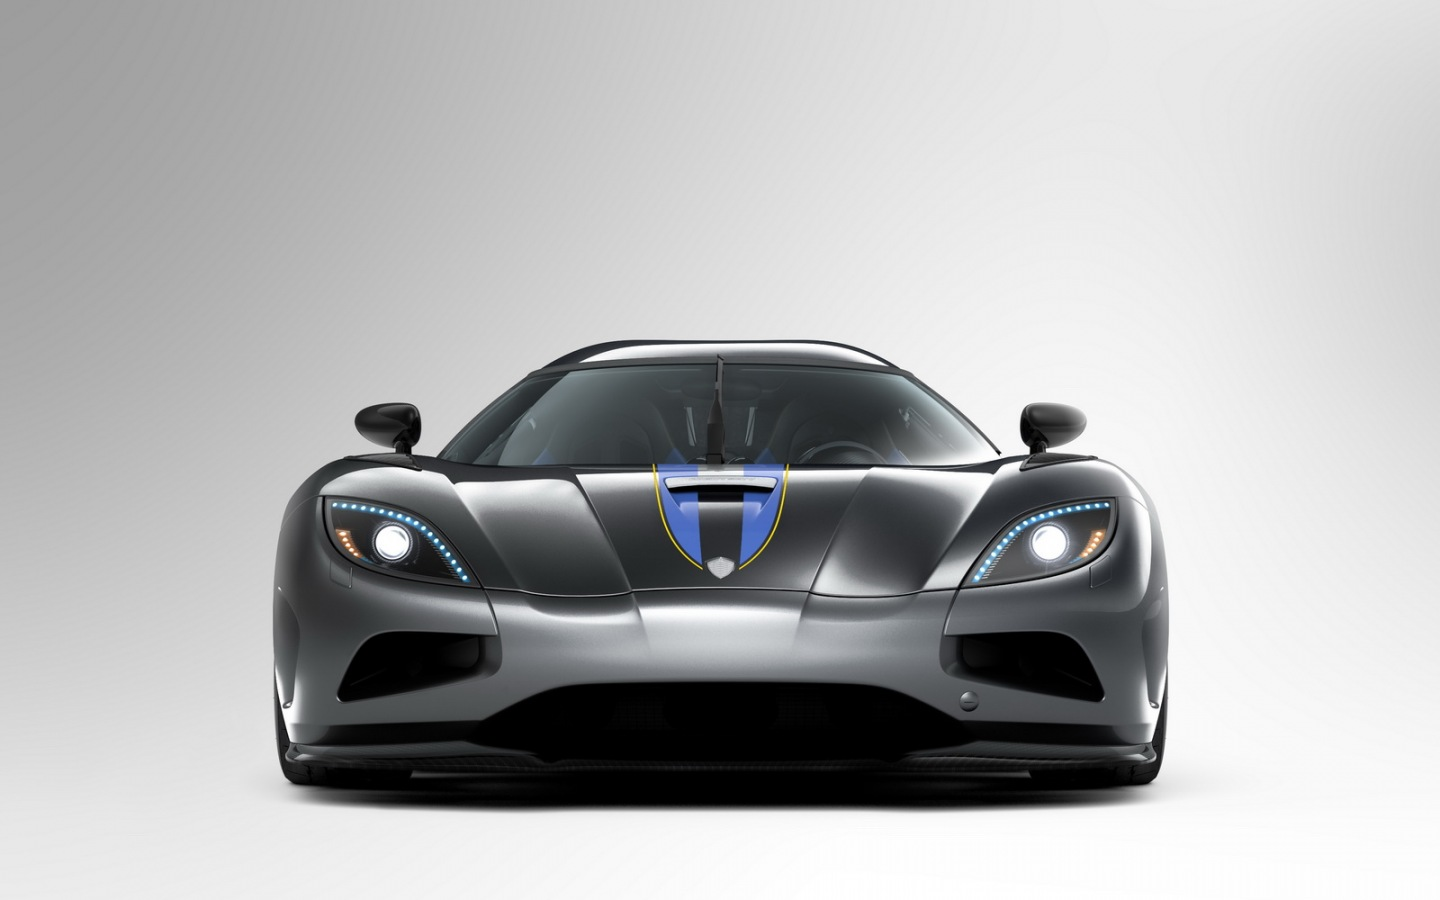 Like or share Koenigsegg Agera R Wallpaper on Facebook 1440x900